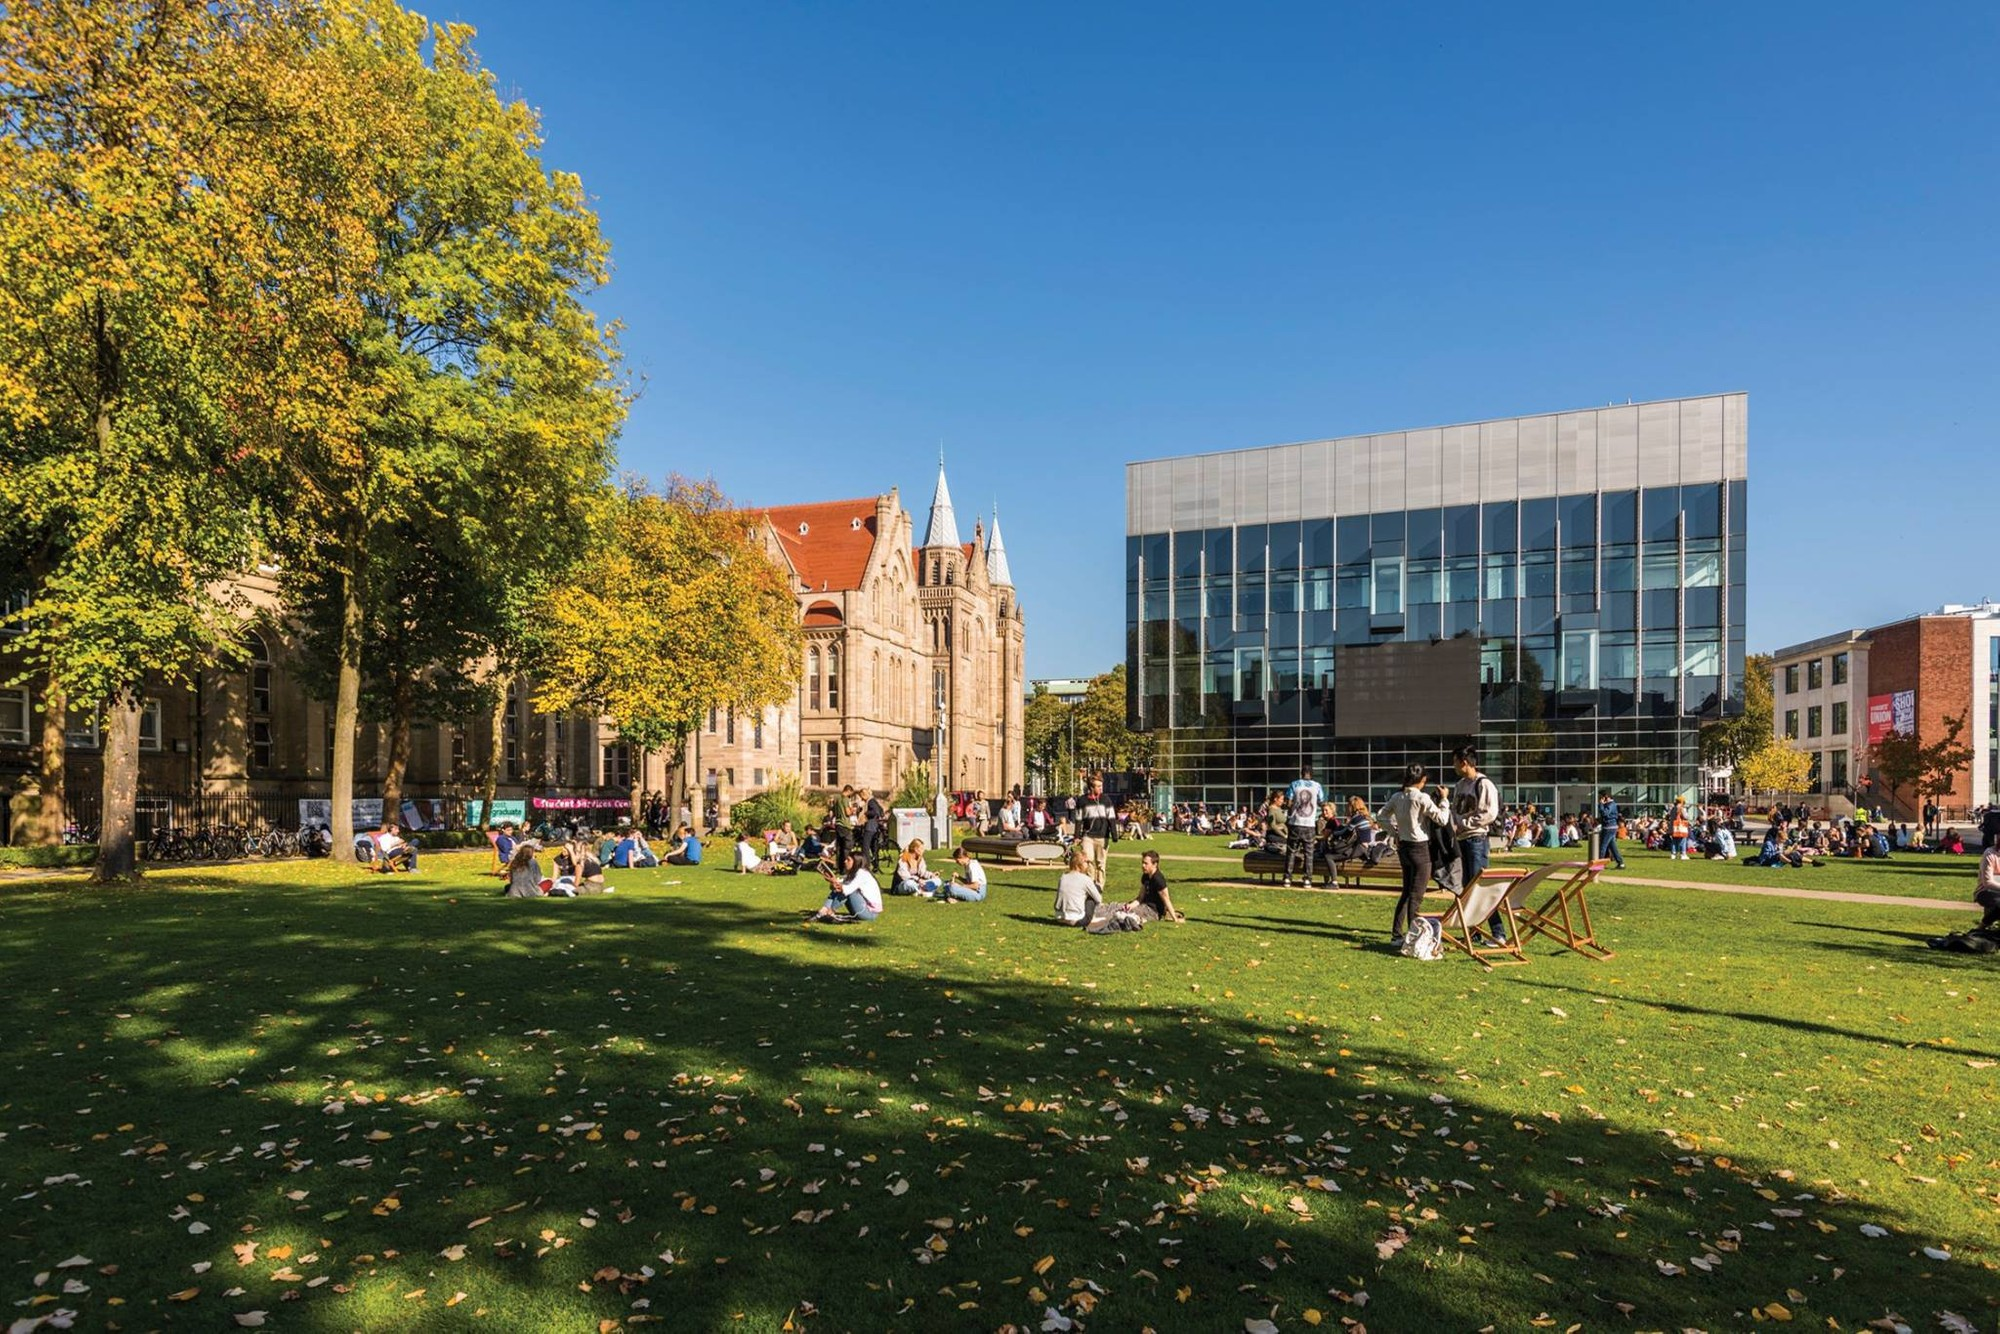 Campus and quad view with students of the University of Manchester